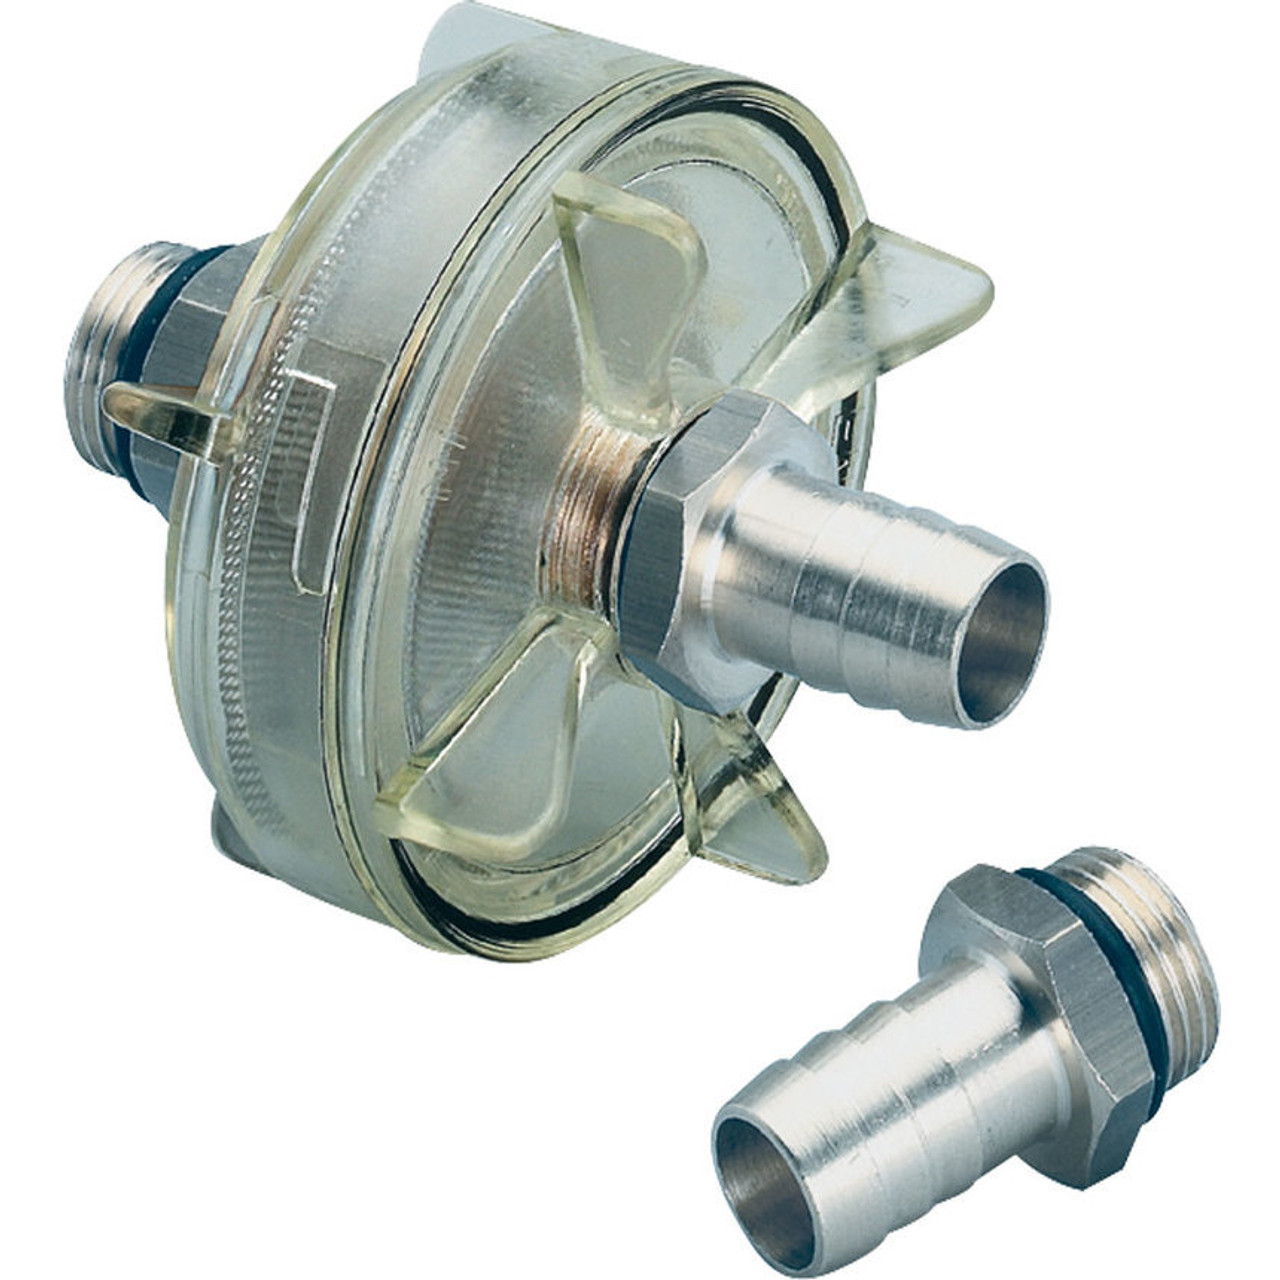 GP-201 and GP-301 series strainer kit